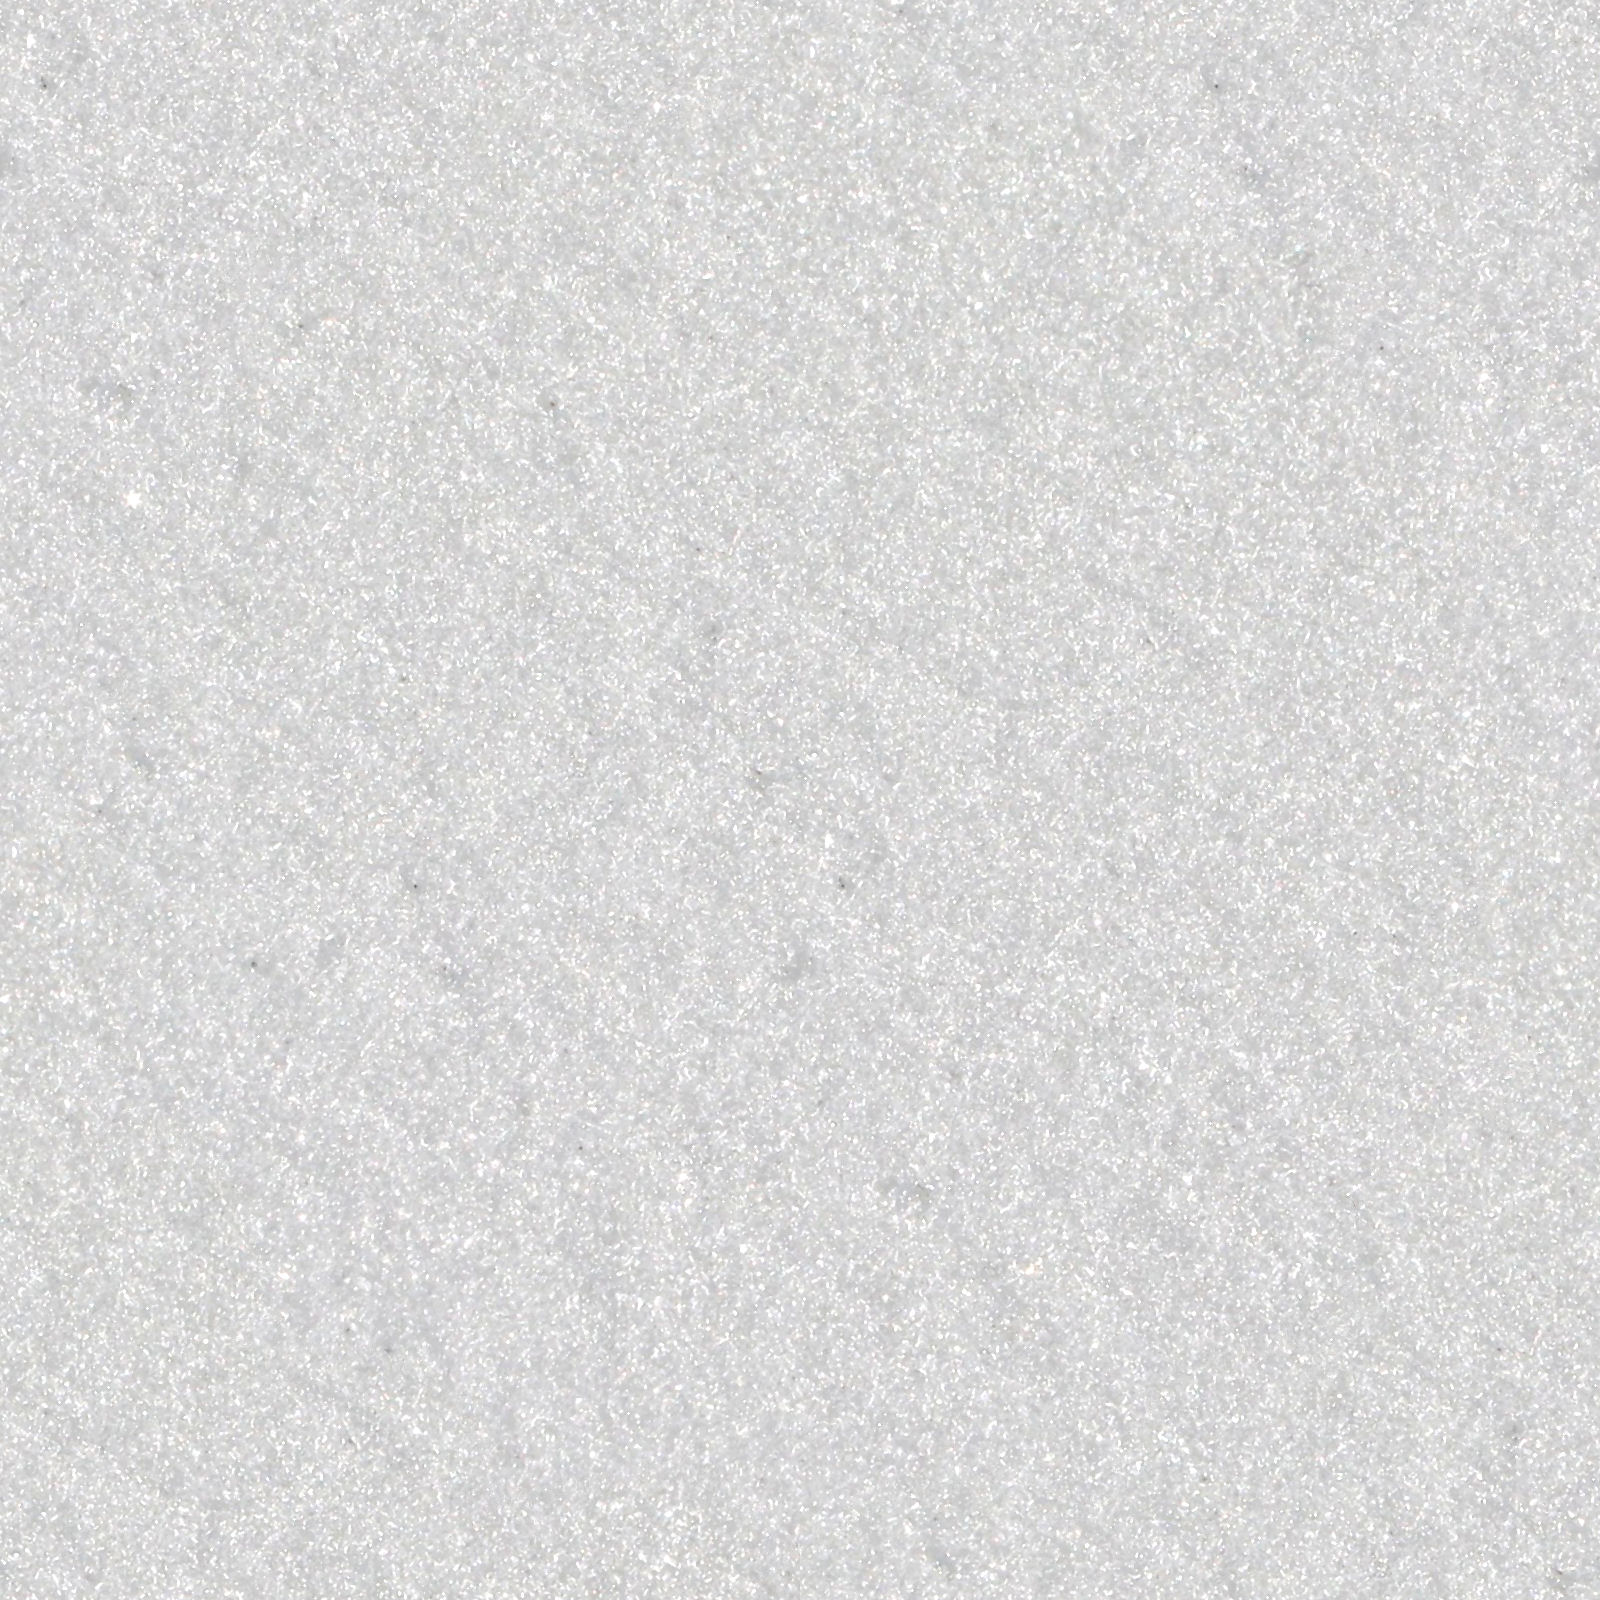 snow texture, download photo, snow texture background